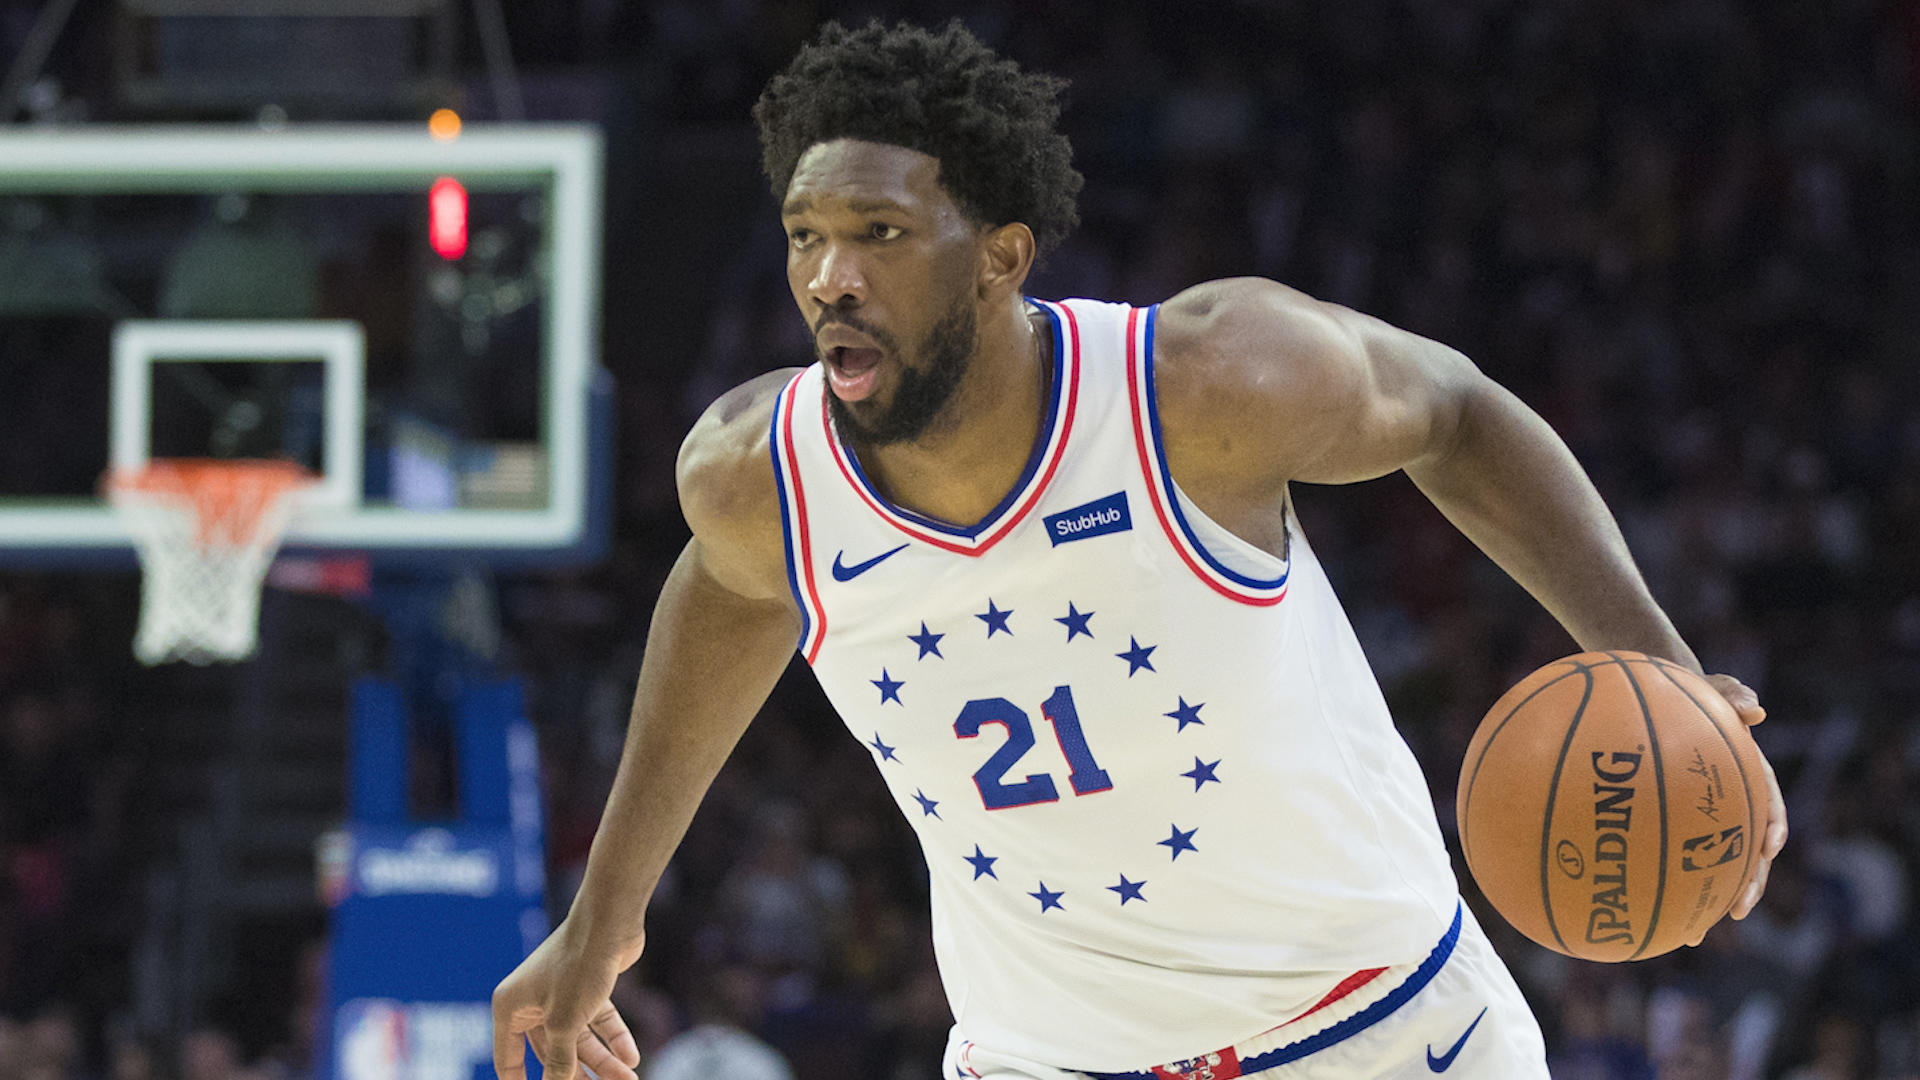 Joel Embiid injury update: 76ers All-Star expected to play against Pacers on Sunday, per report